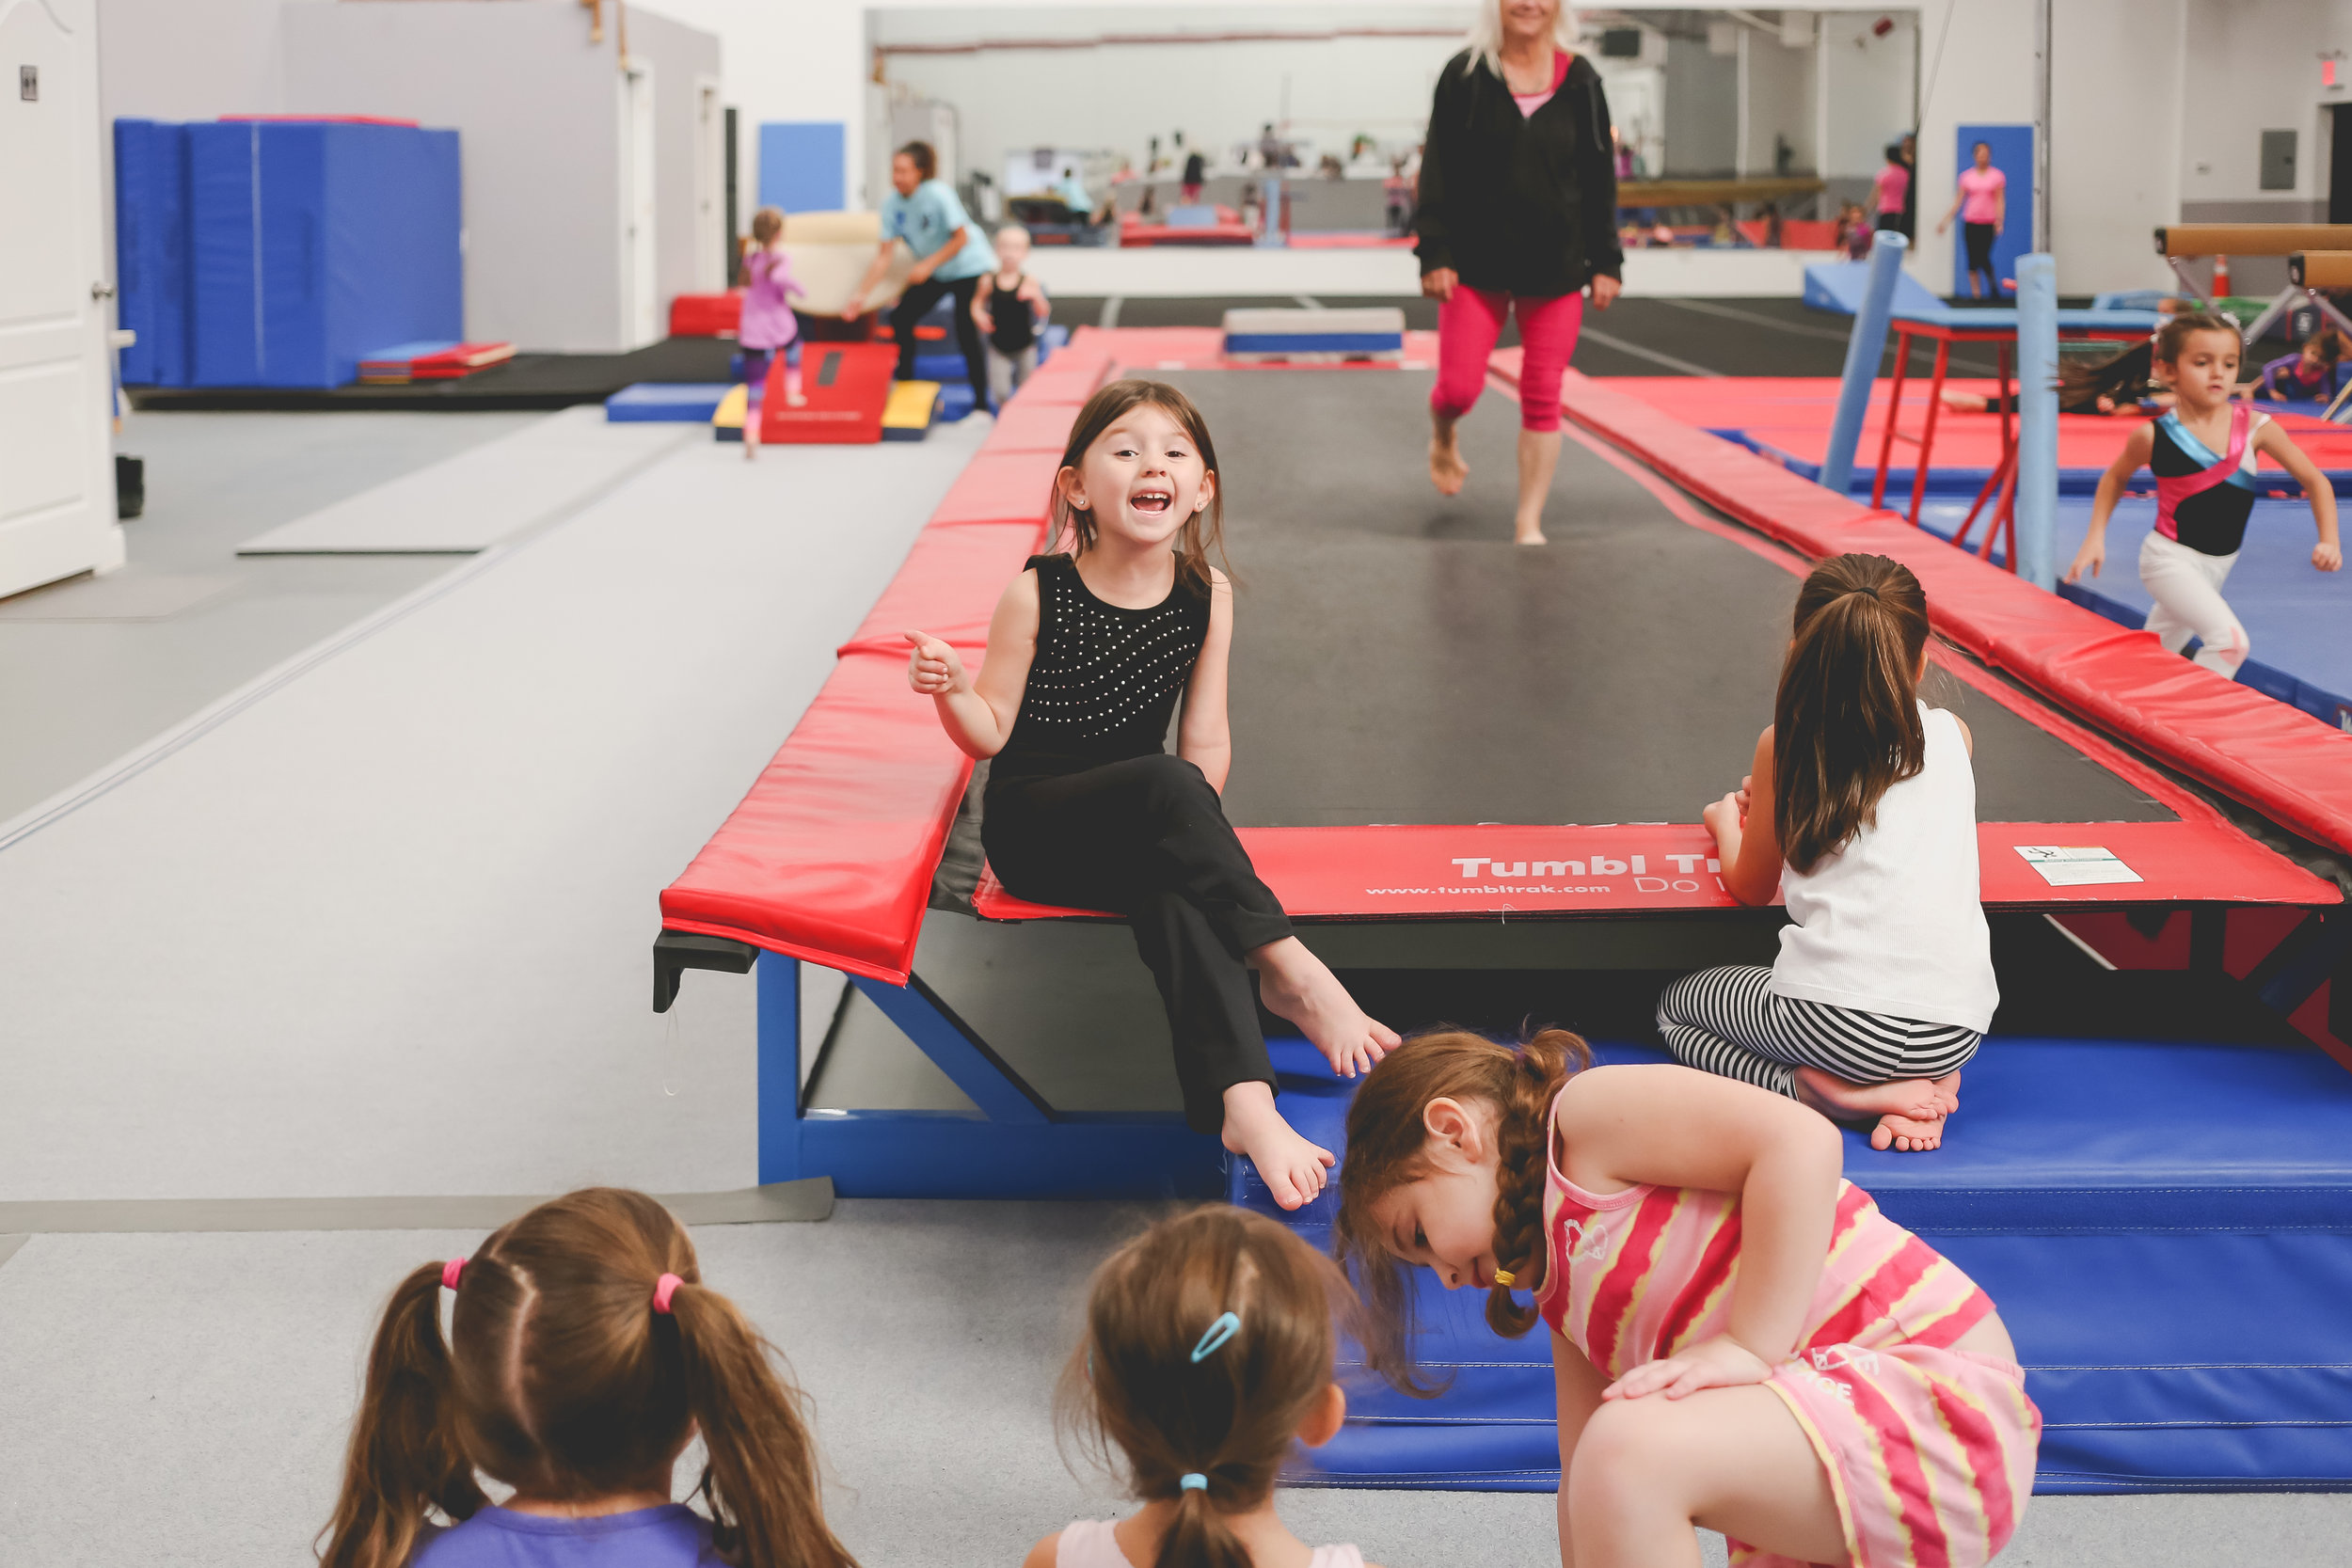 Being sassy at No Limitz gymnastics center in Staten Island, NY. Day in the Life Photography.